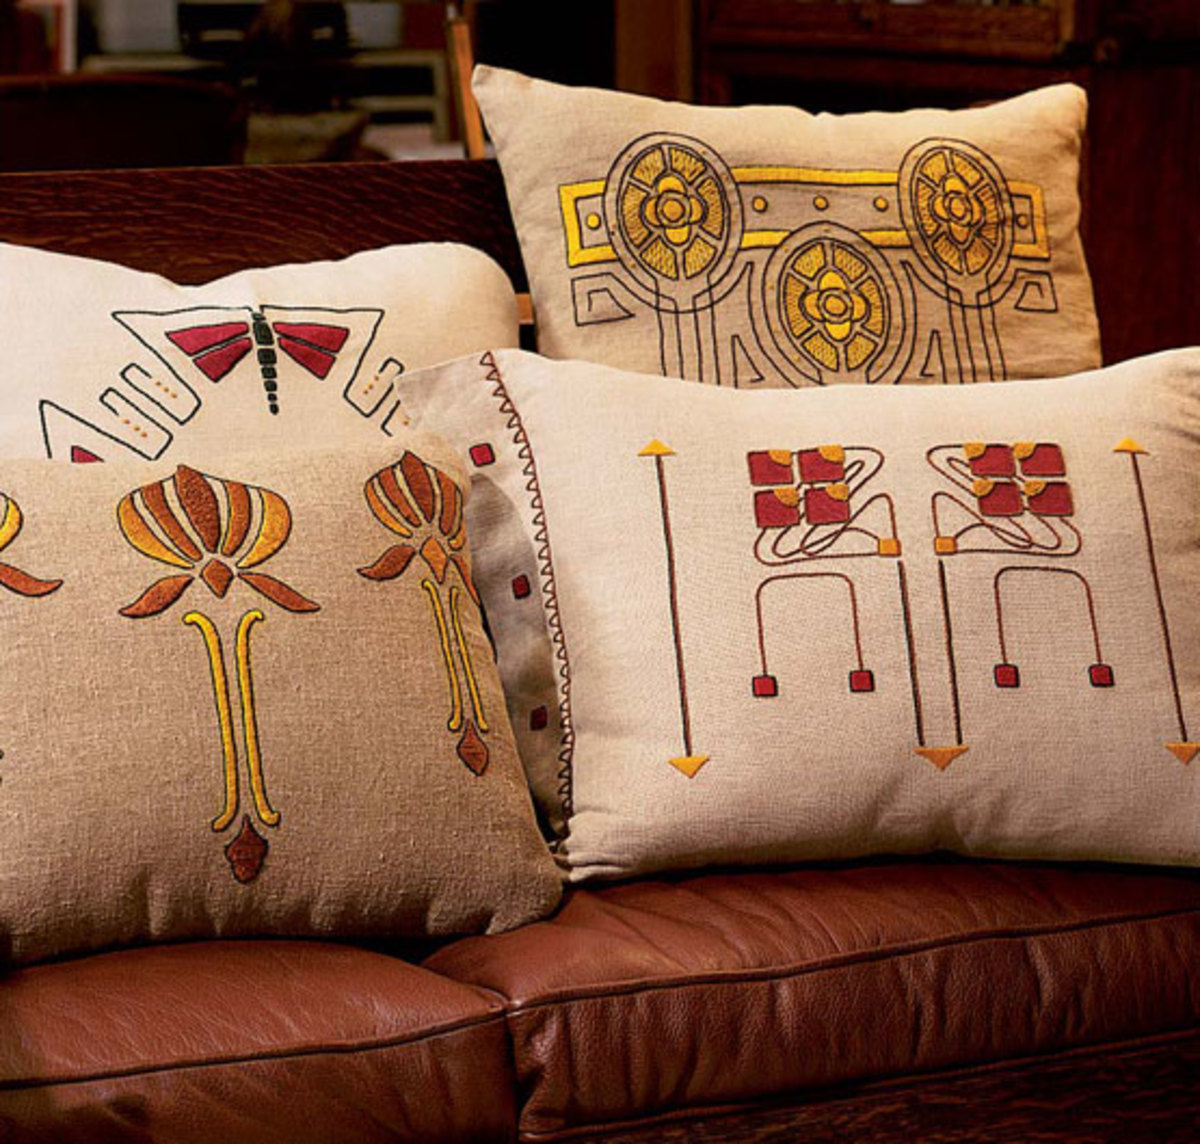 Vintage And New Together The Dragonfly Checkerberry Designs Are